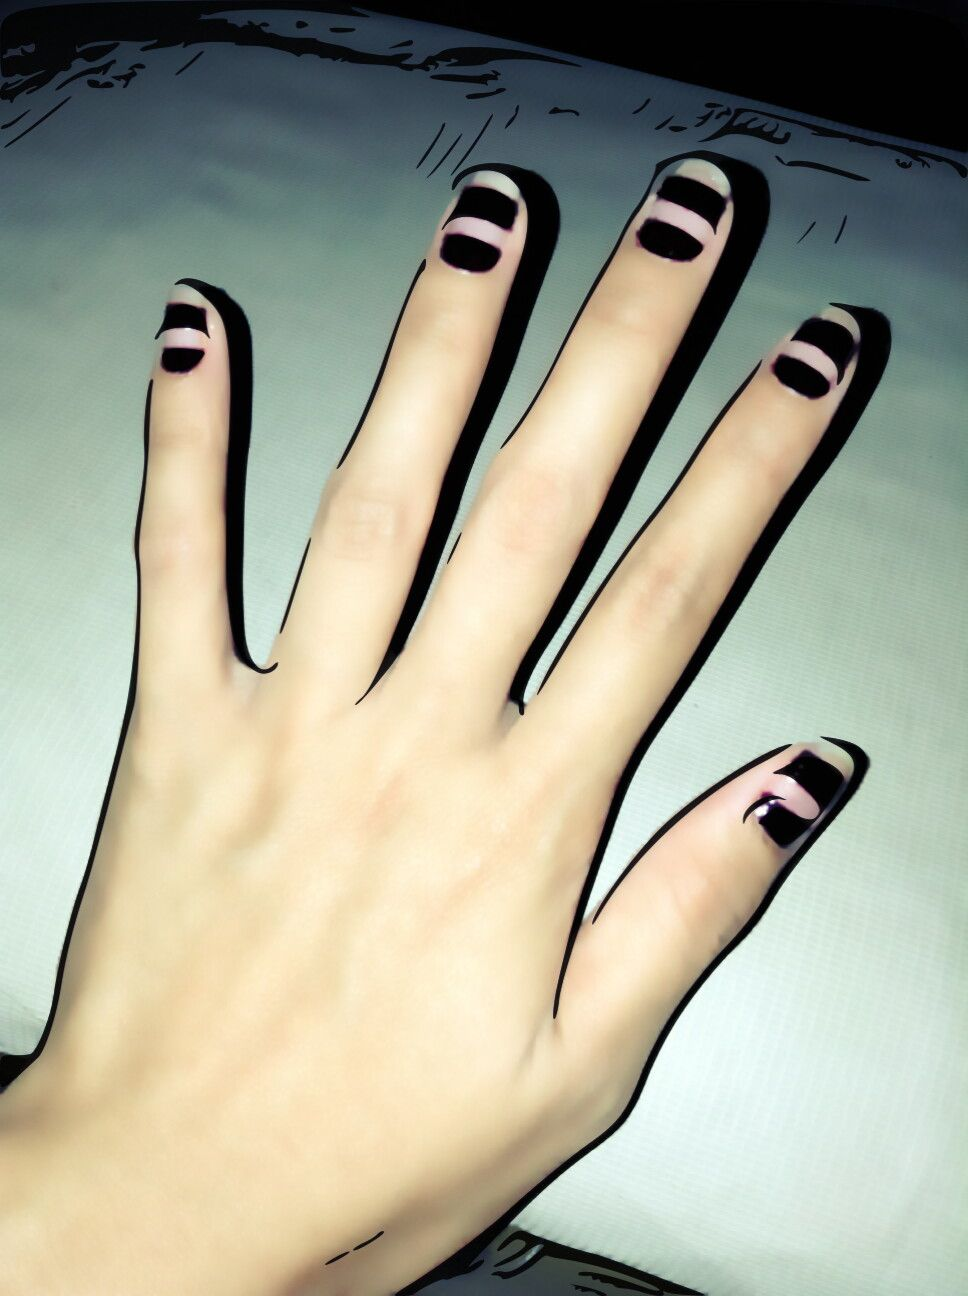 My nails with art.